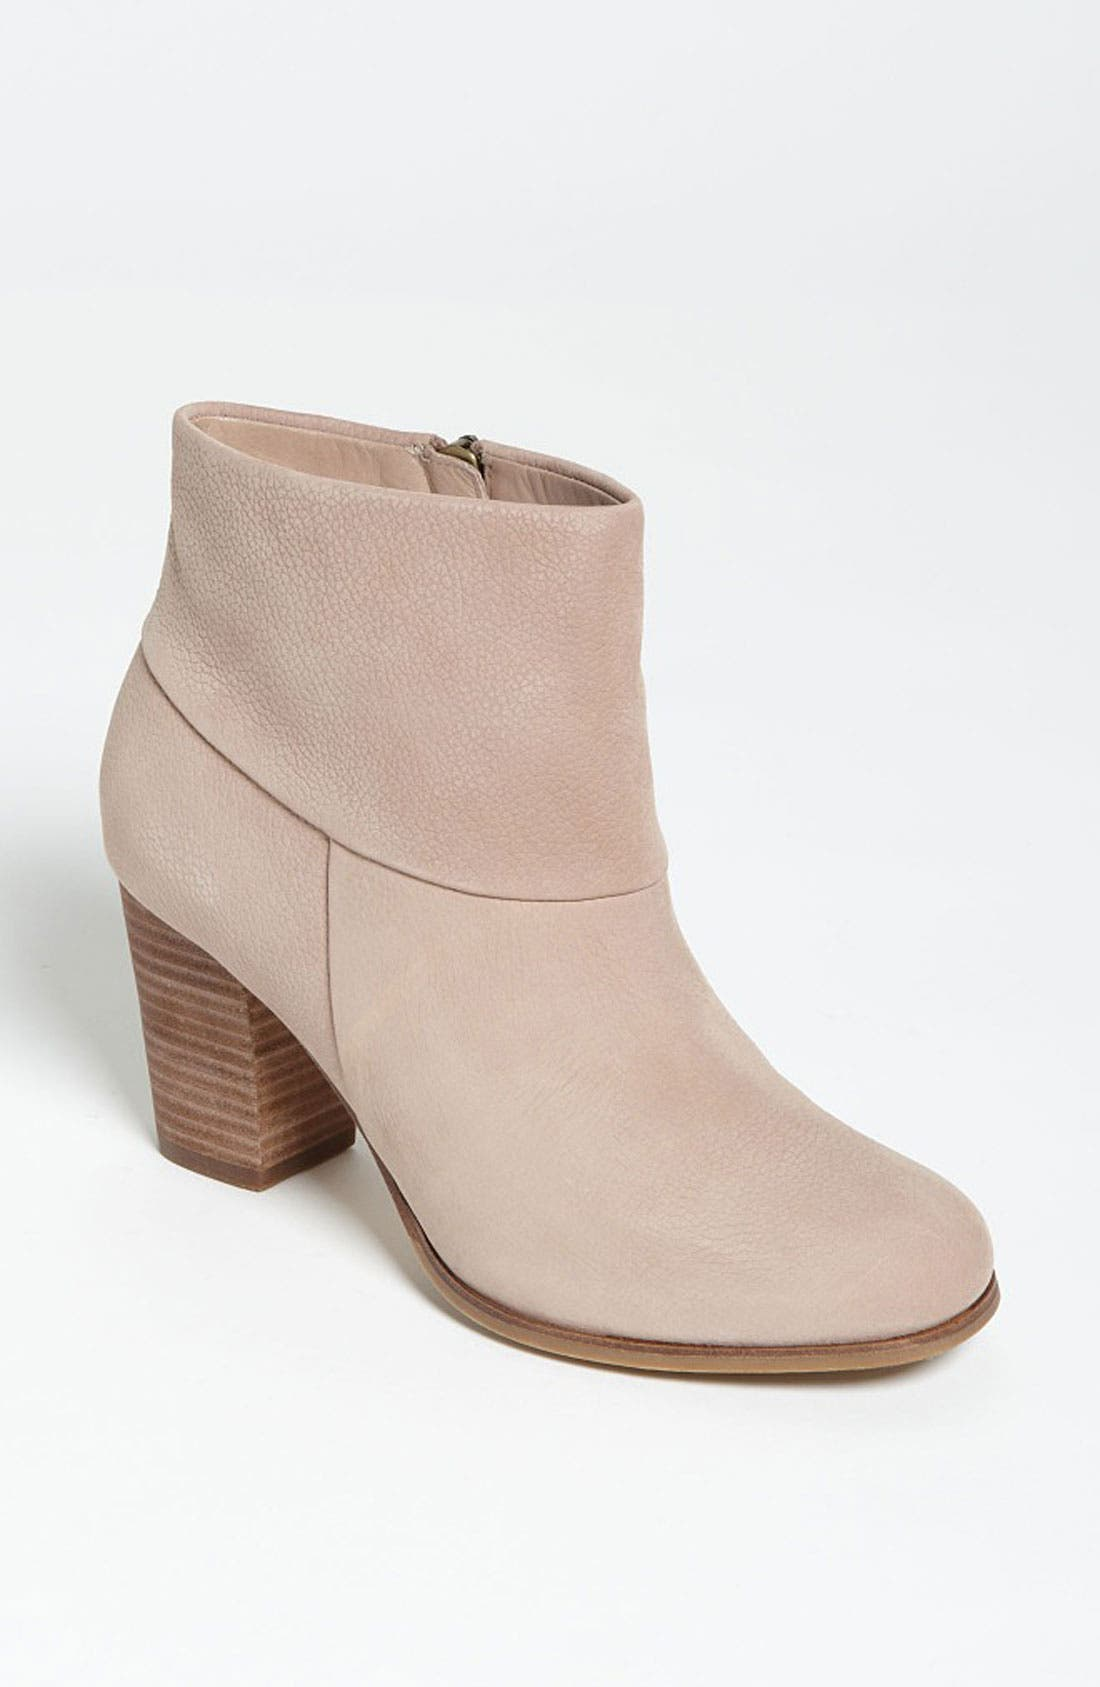 Main Image - Cole Haan 'Cassidy' Bootie